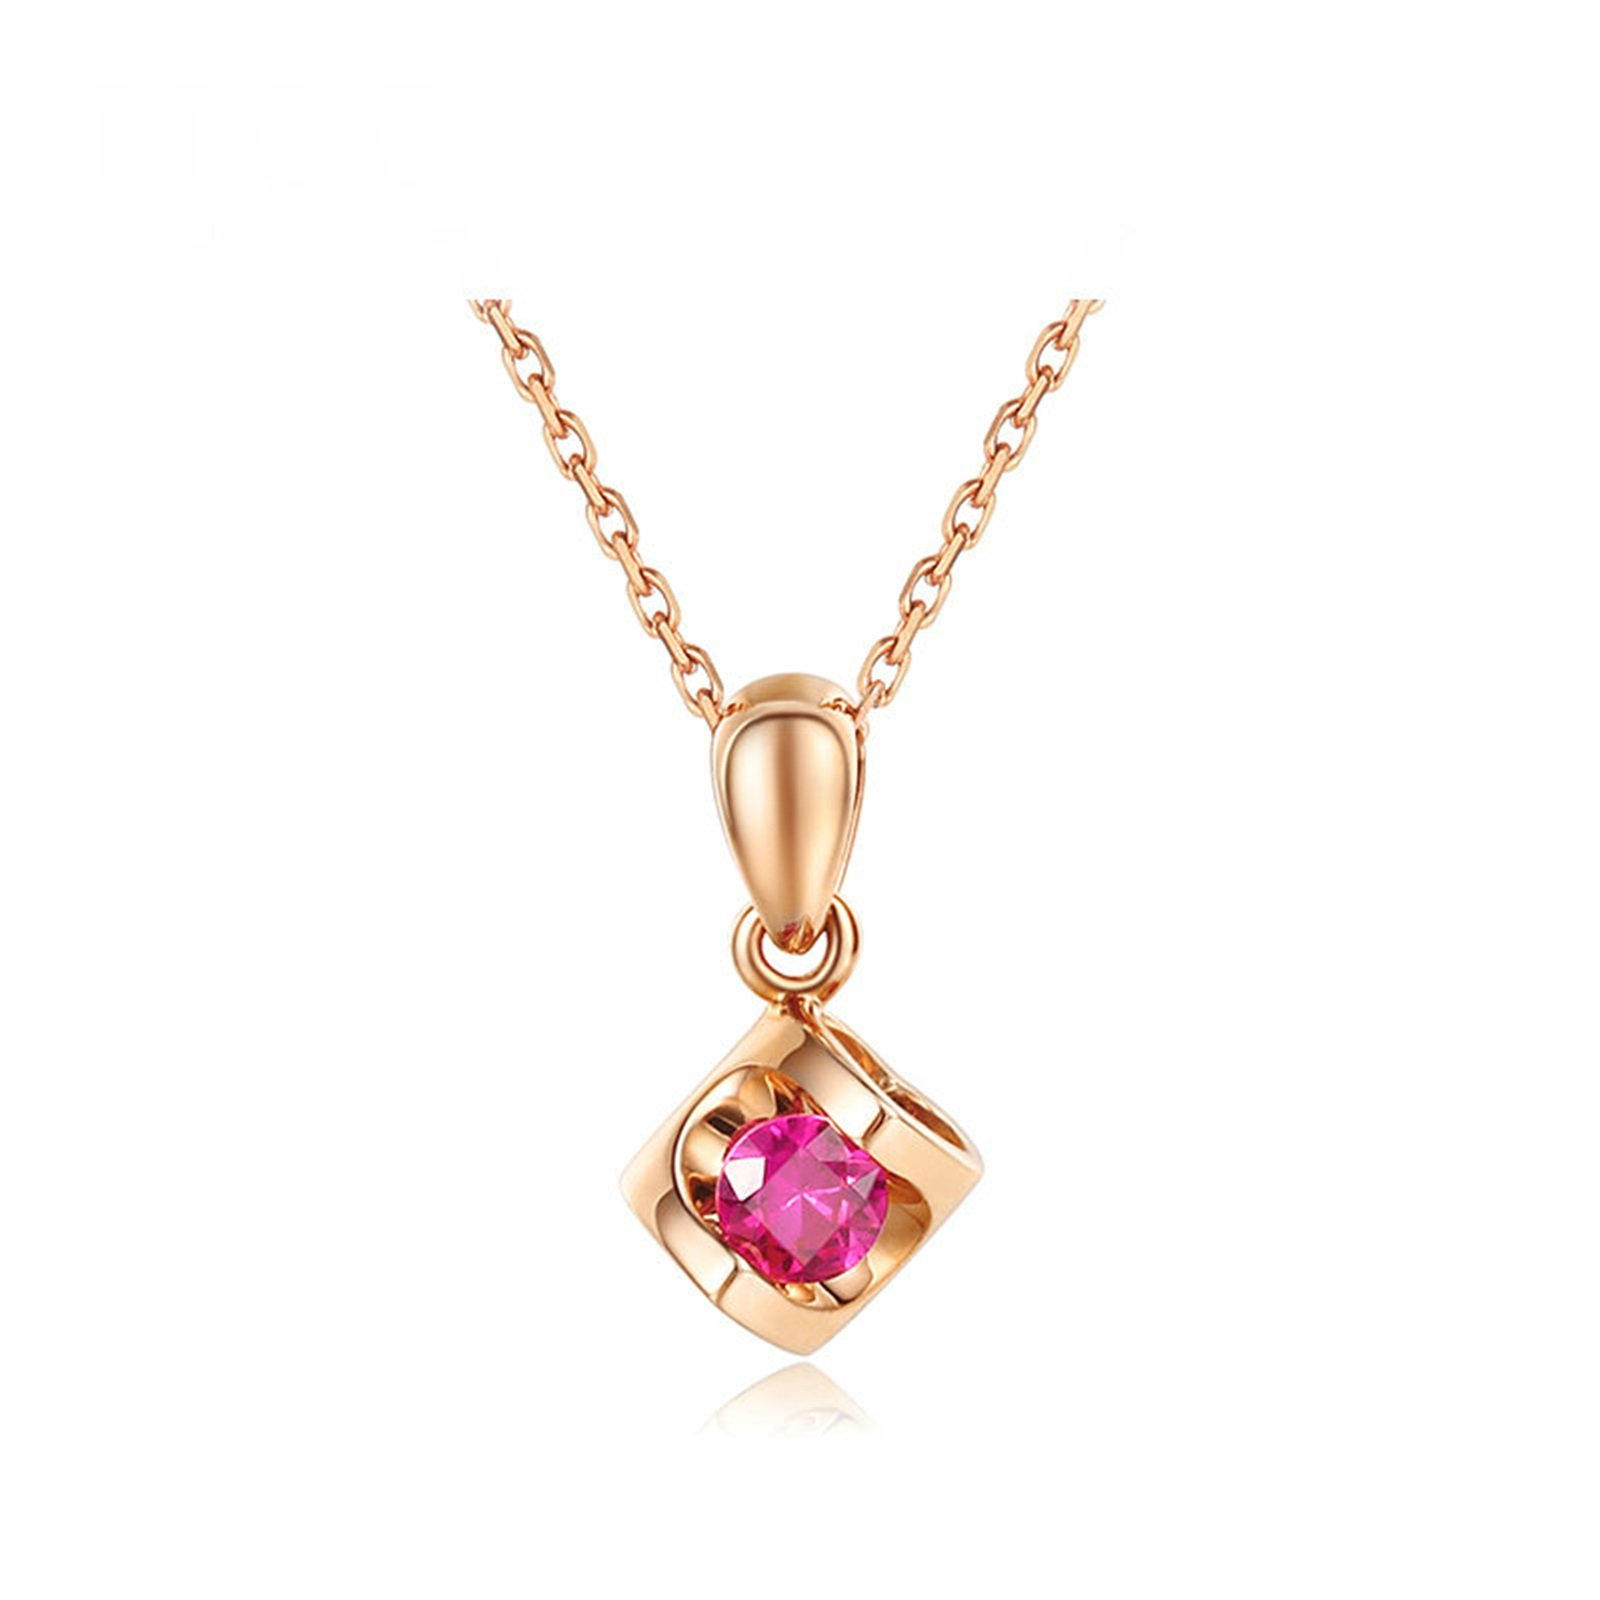 Daesar 18K Gold Necklace For Women Hollow Heart Cubic Zirconia Pendant Necklace Rose Gold Length: 40CM by Daesar